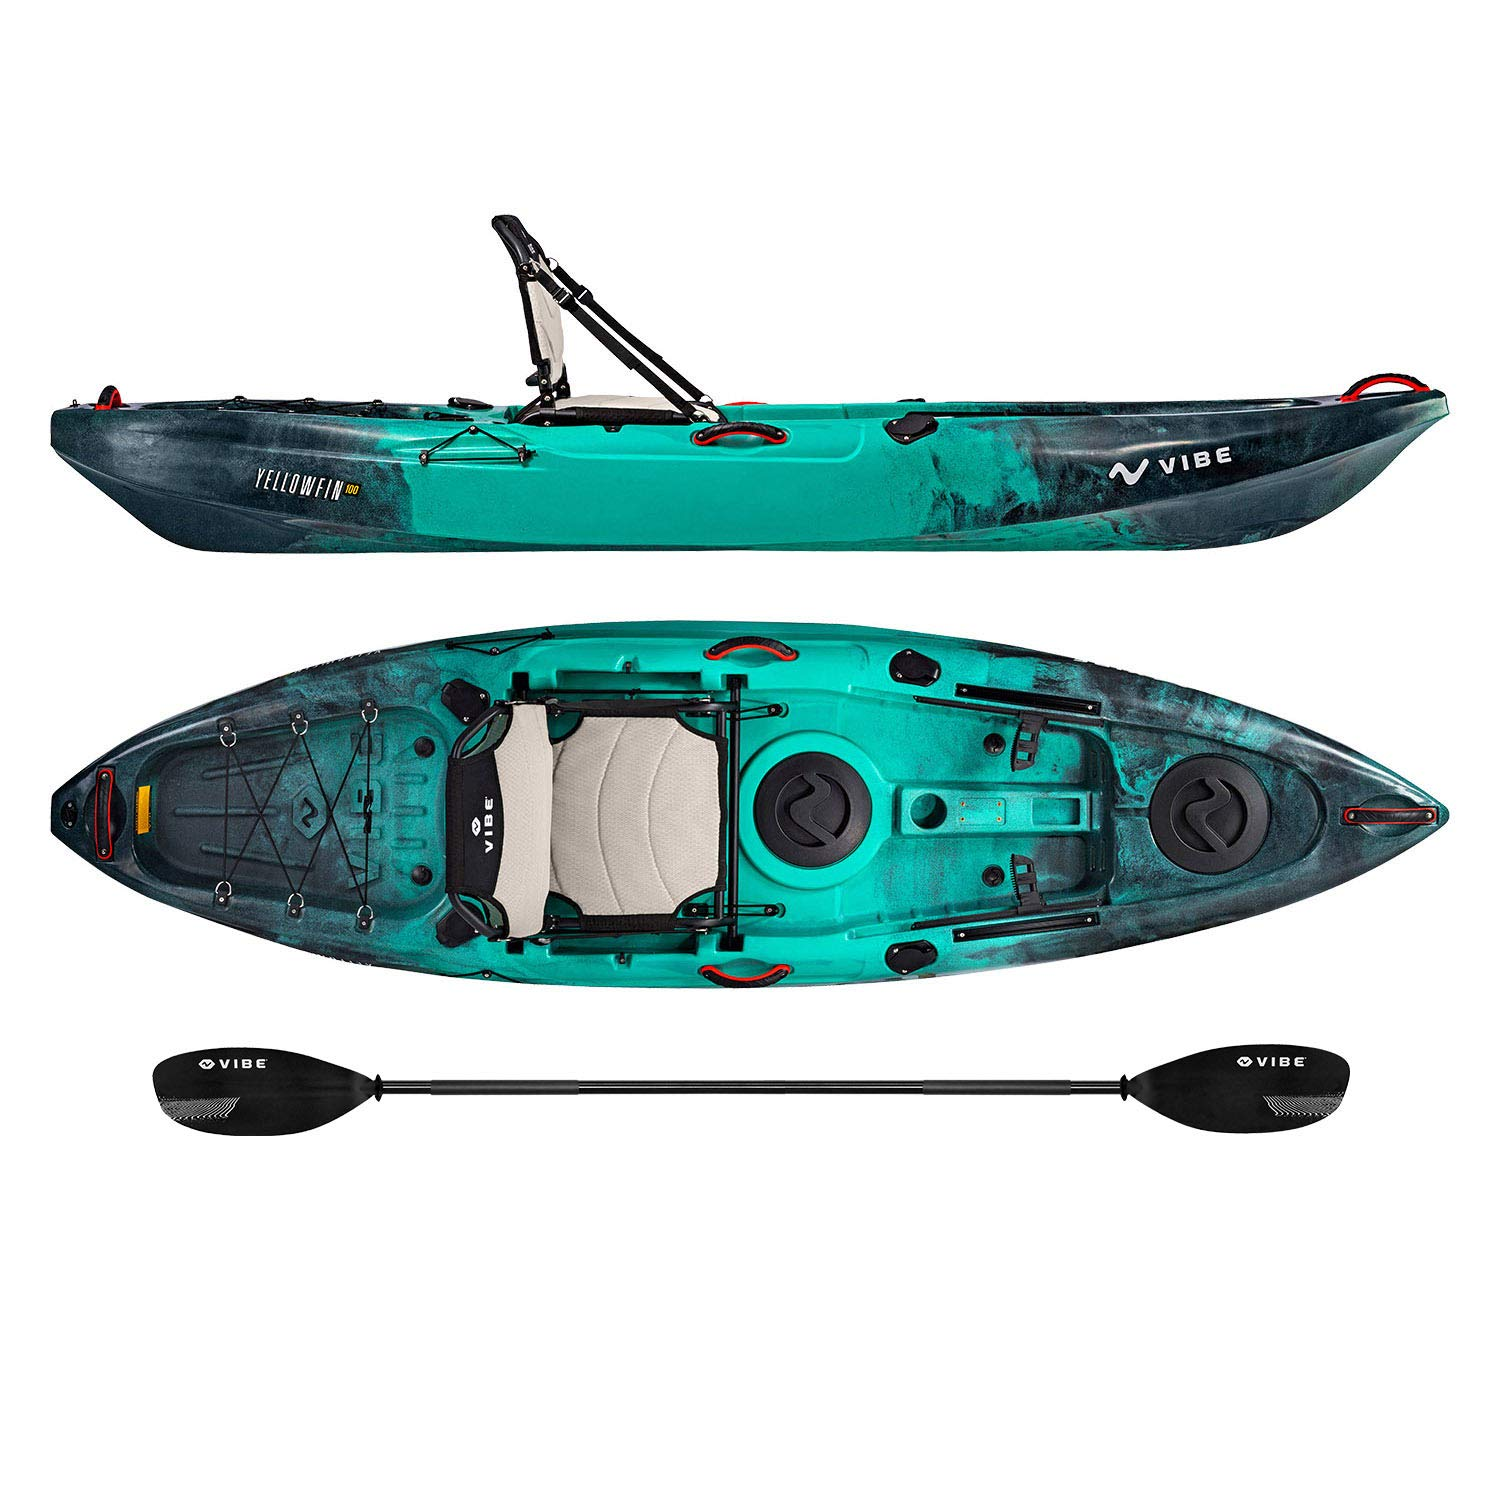 Vibe Kayaks Yellowfin 100 10 Foot Angler Recreational Sit On Top Light Weight Fishing Kayak (Caribbean Blue) with Paddle and Adjustable Hero Comfort Seat - Journey Paddle by Vibe Kayaks